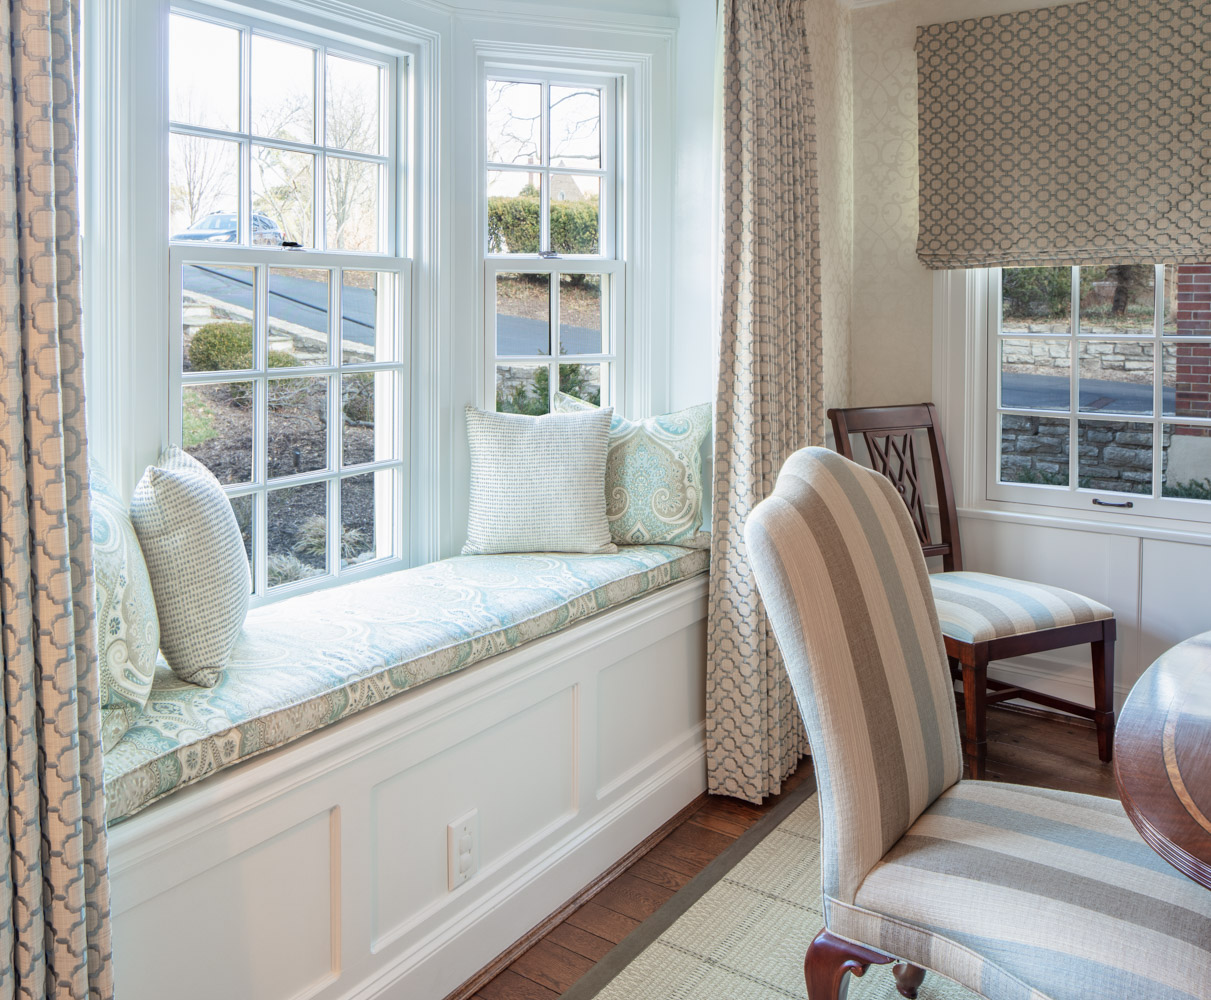 Window seat with pillows